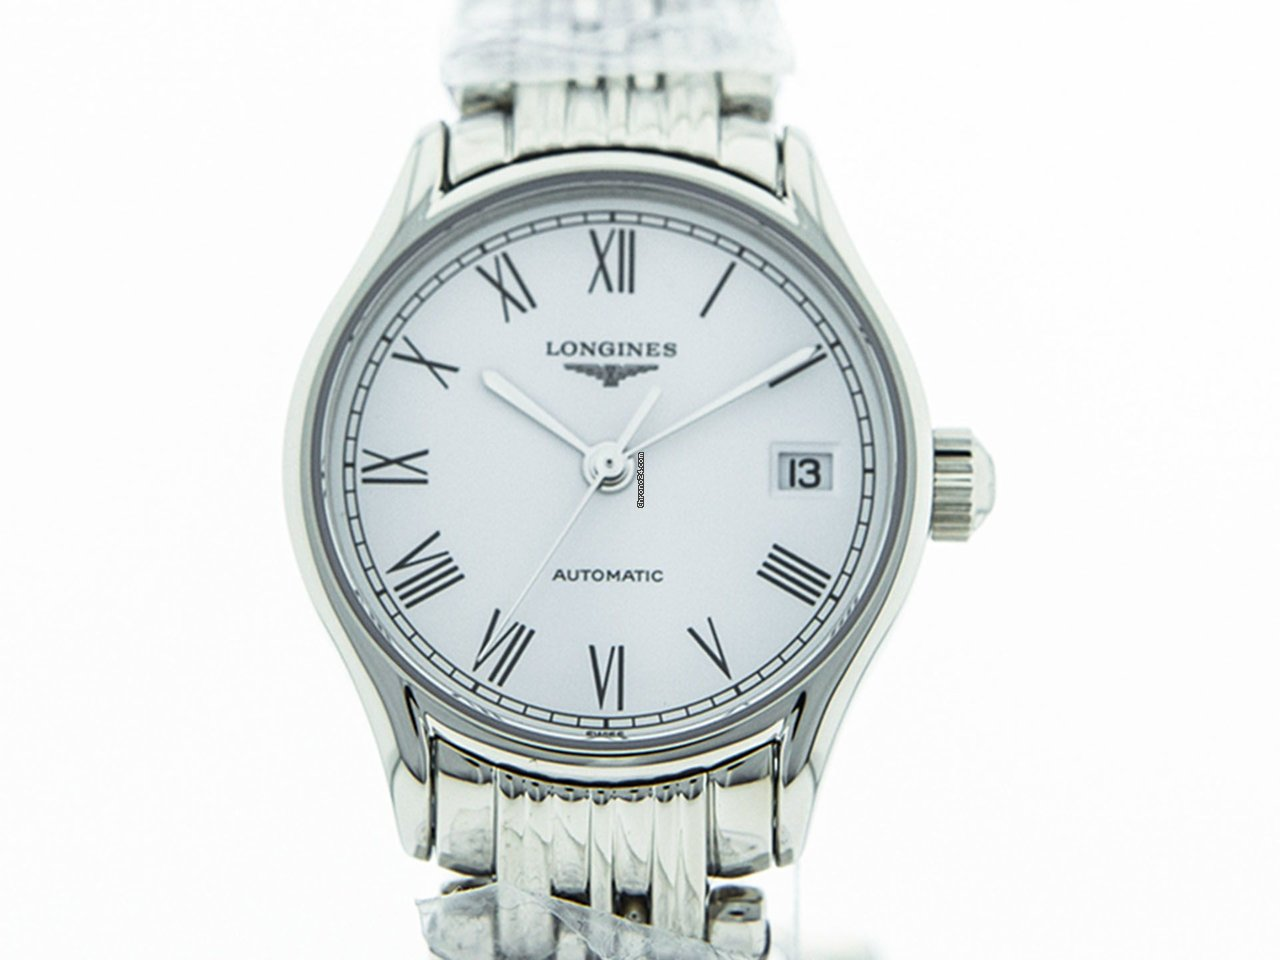 Longines Lyre - all prices for Longines Lyre watches on Chrono24 bf9a2202a6